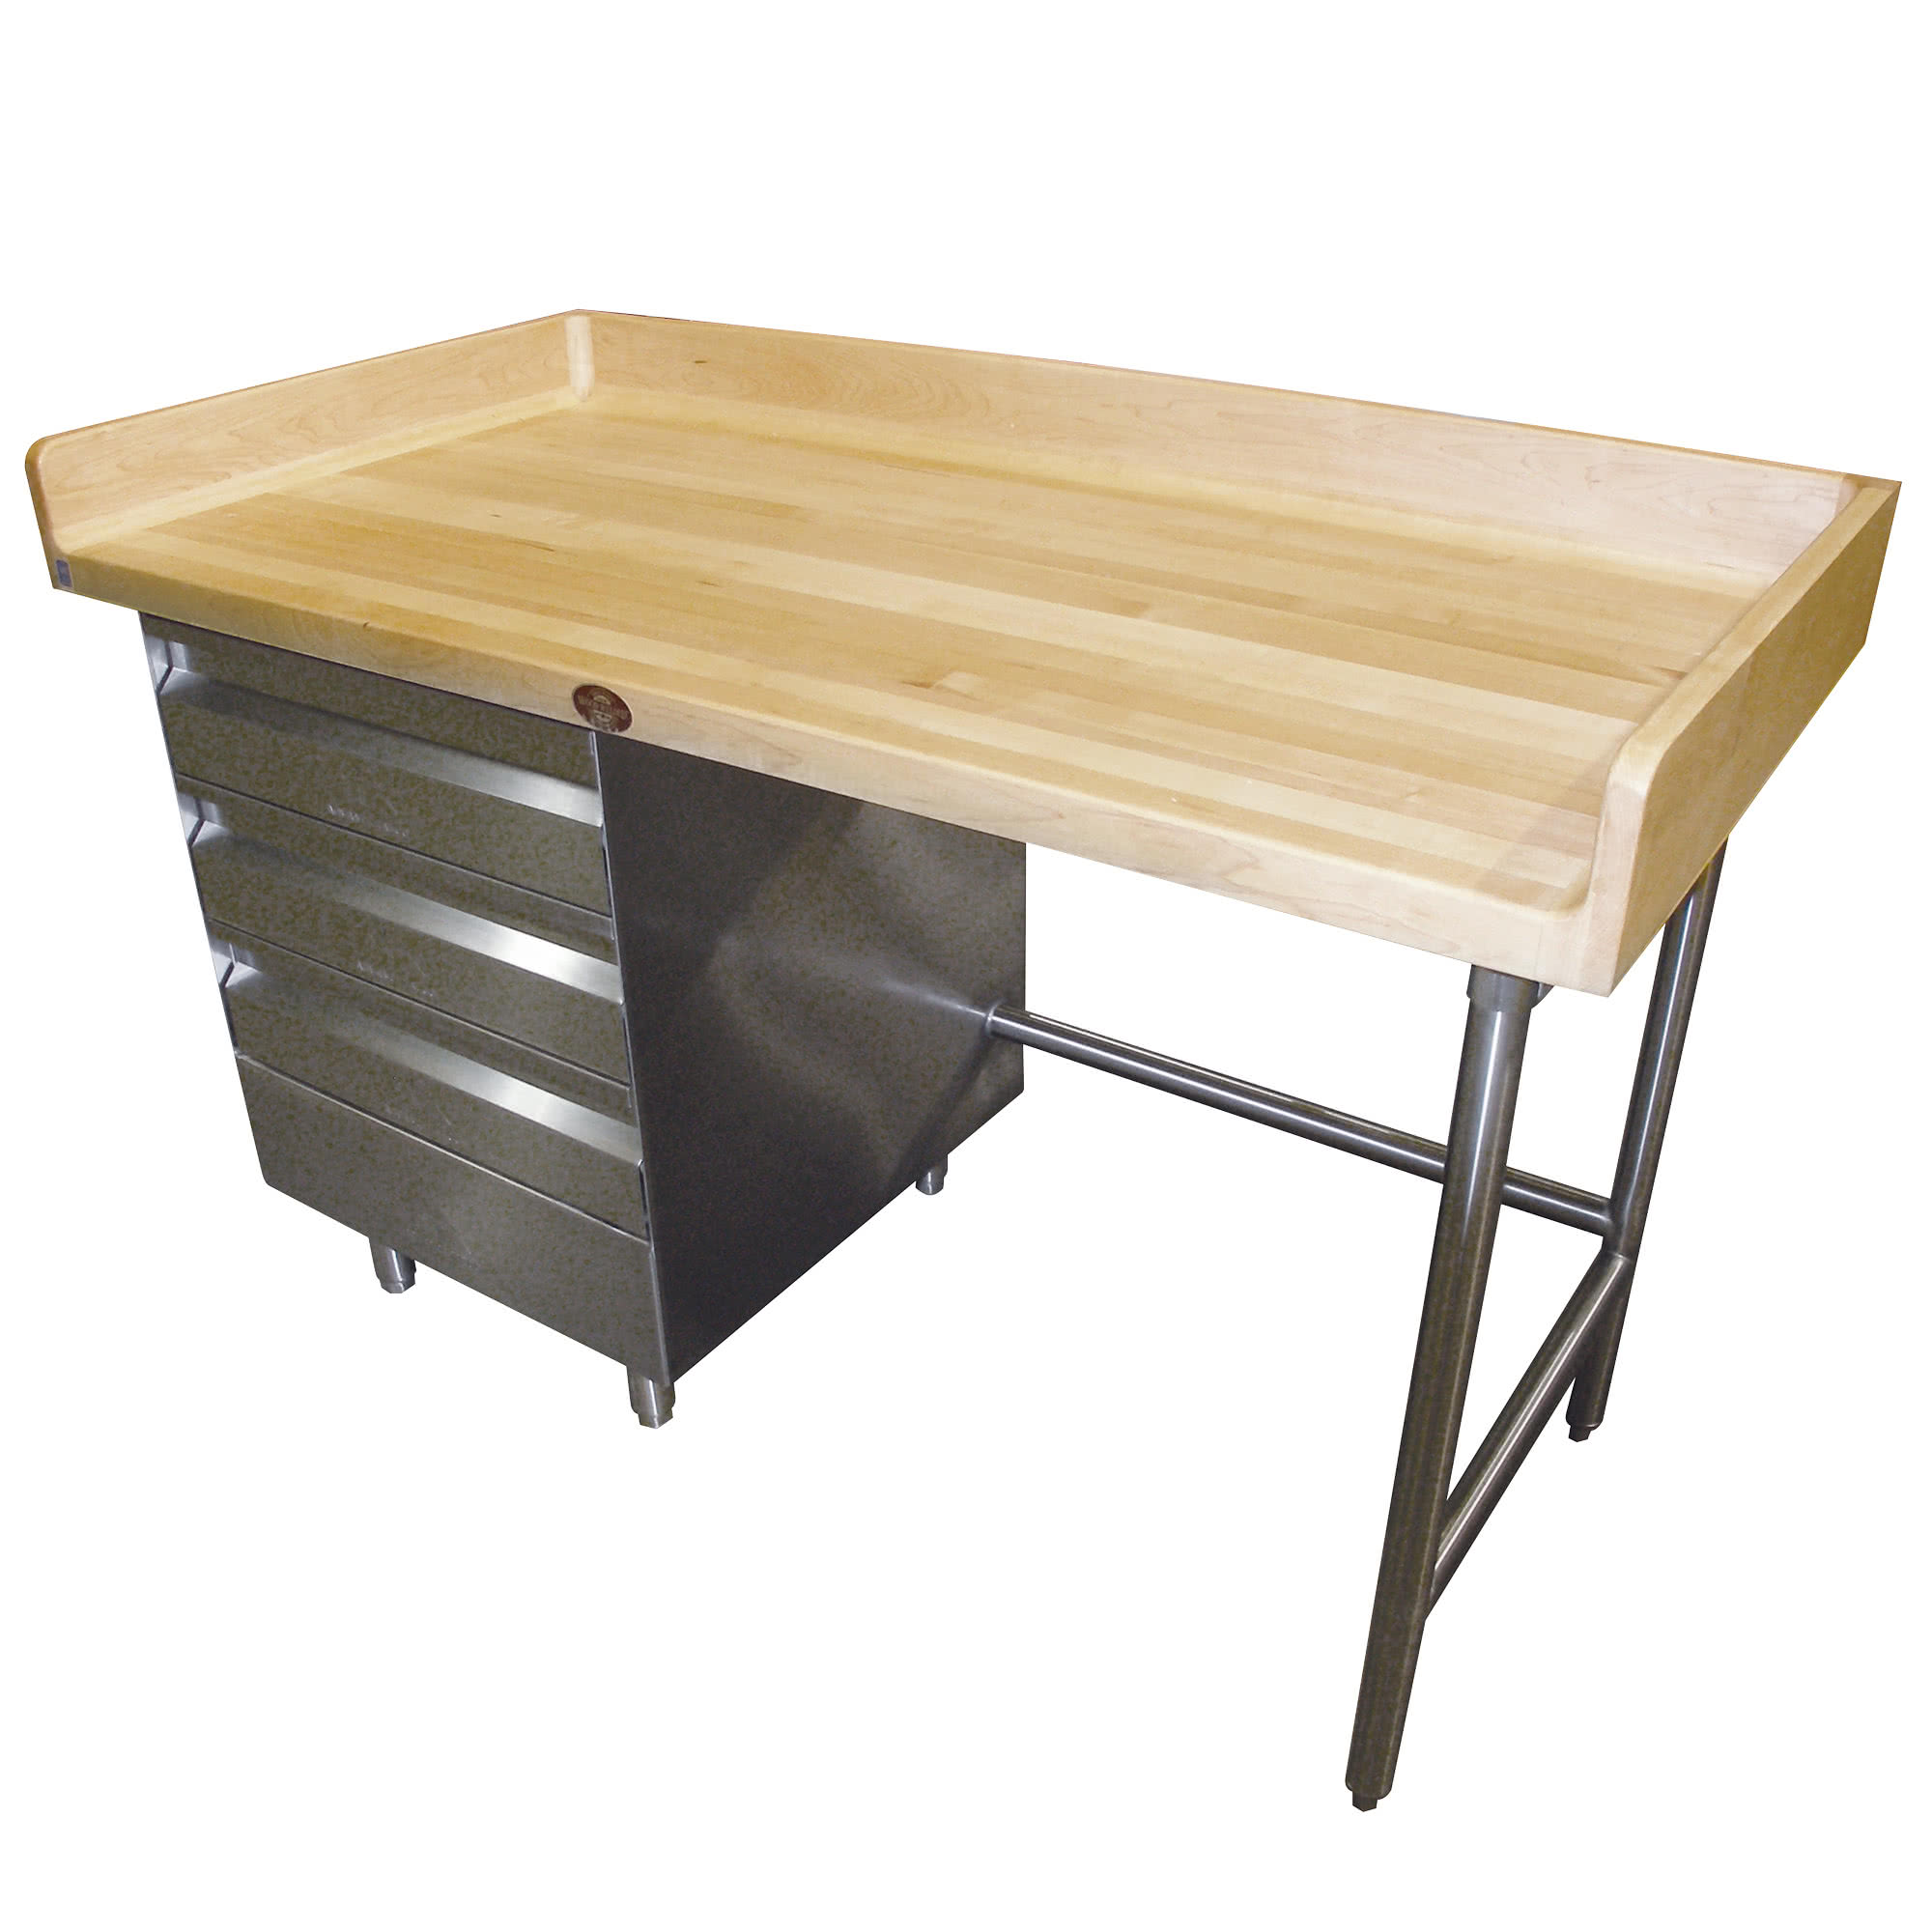 Bst 365 Wood Top Baker S Table With Stainless Steel Base And Drawers 36